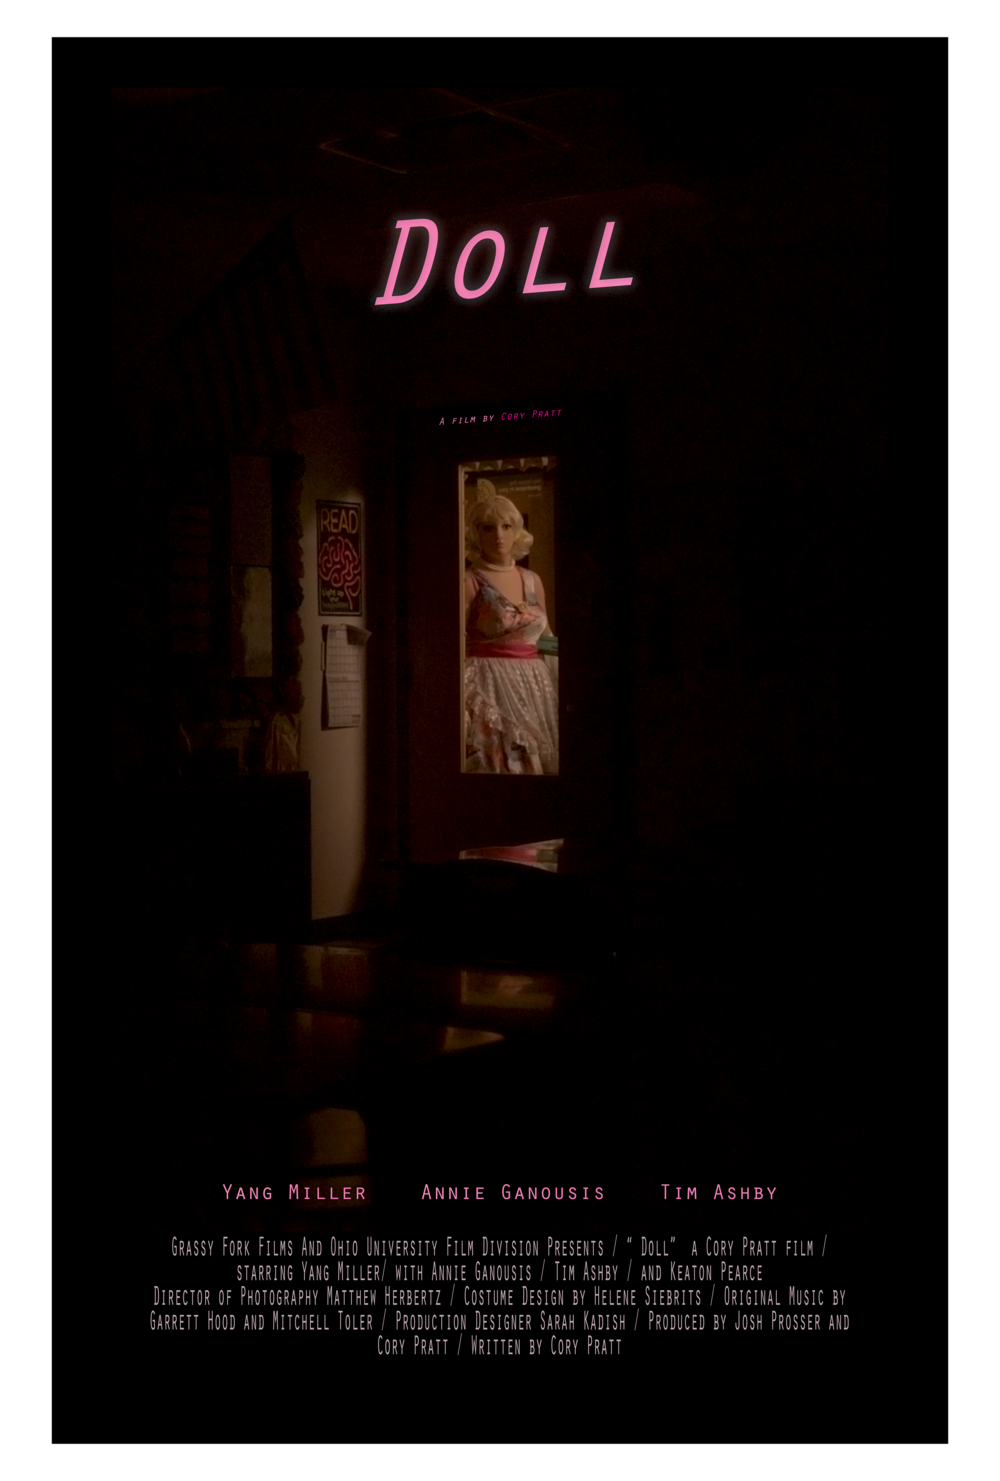 Doll - Short film directed by Cory Pratt premiering at Dances With Films in Hollywood. CA on Saturday June 3rd